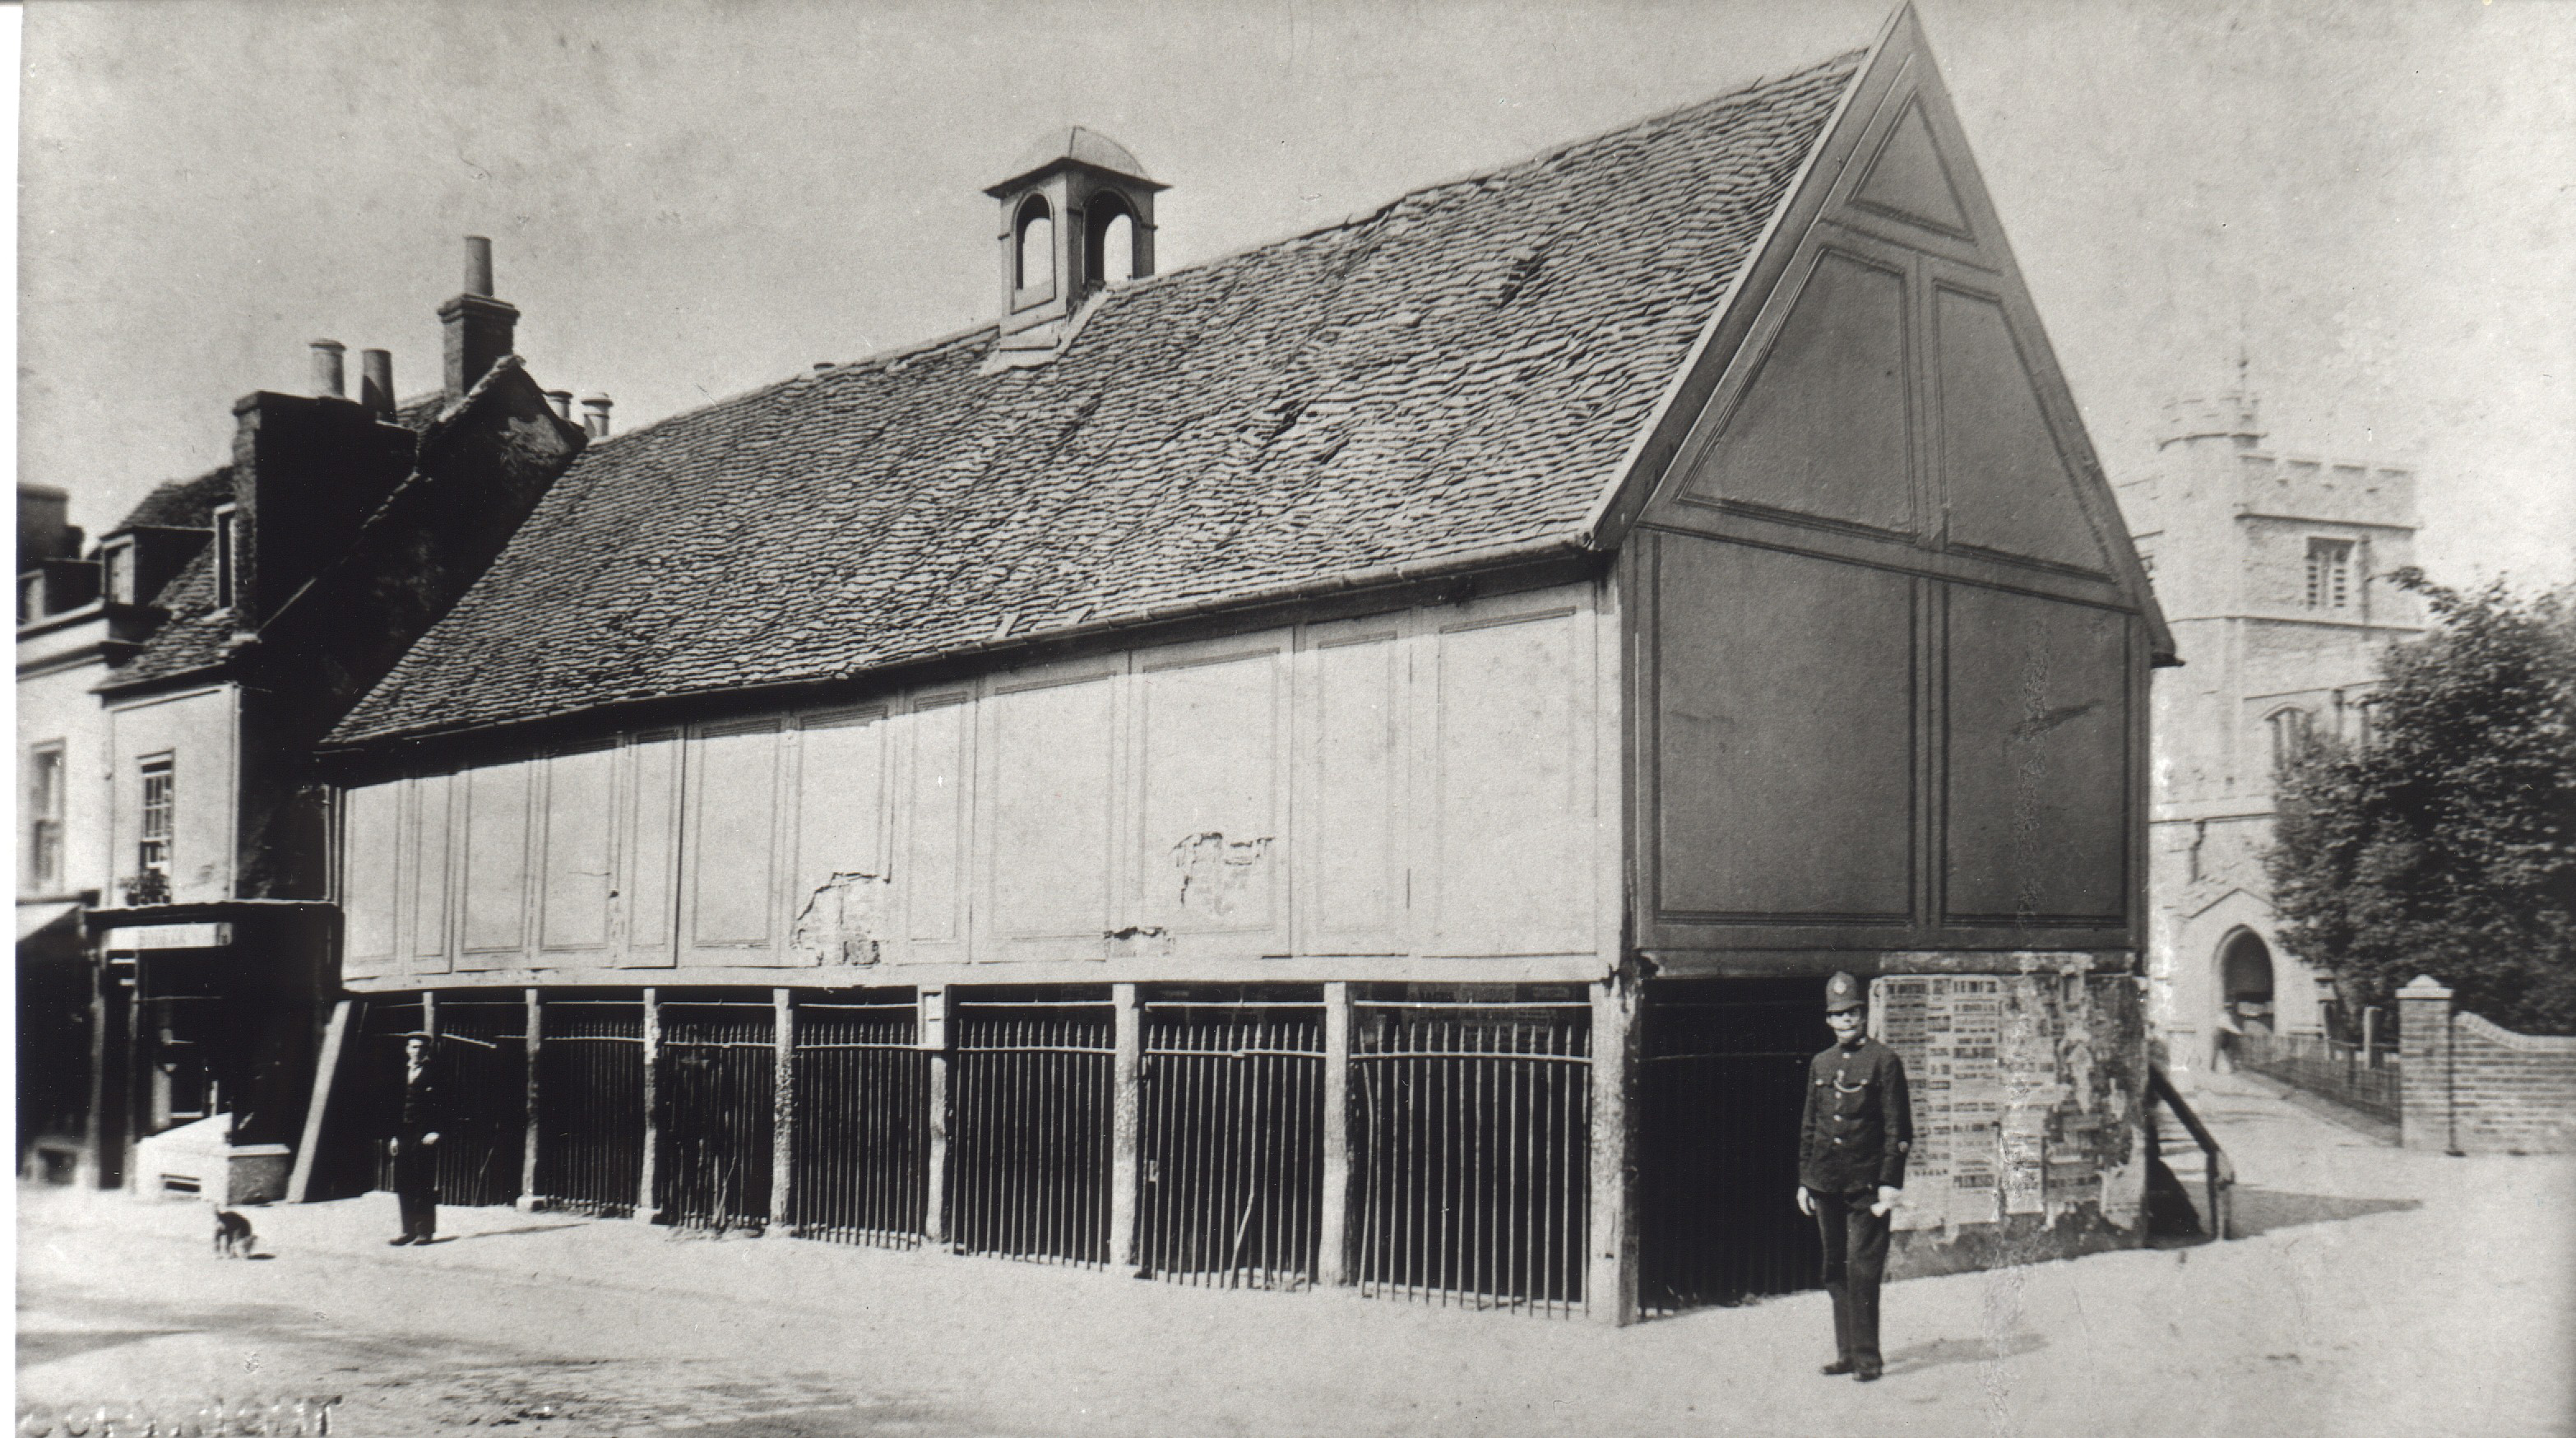 Tring Old Market House, 1890s